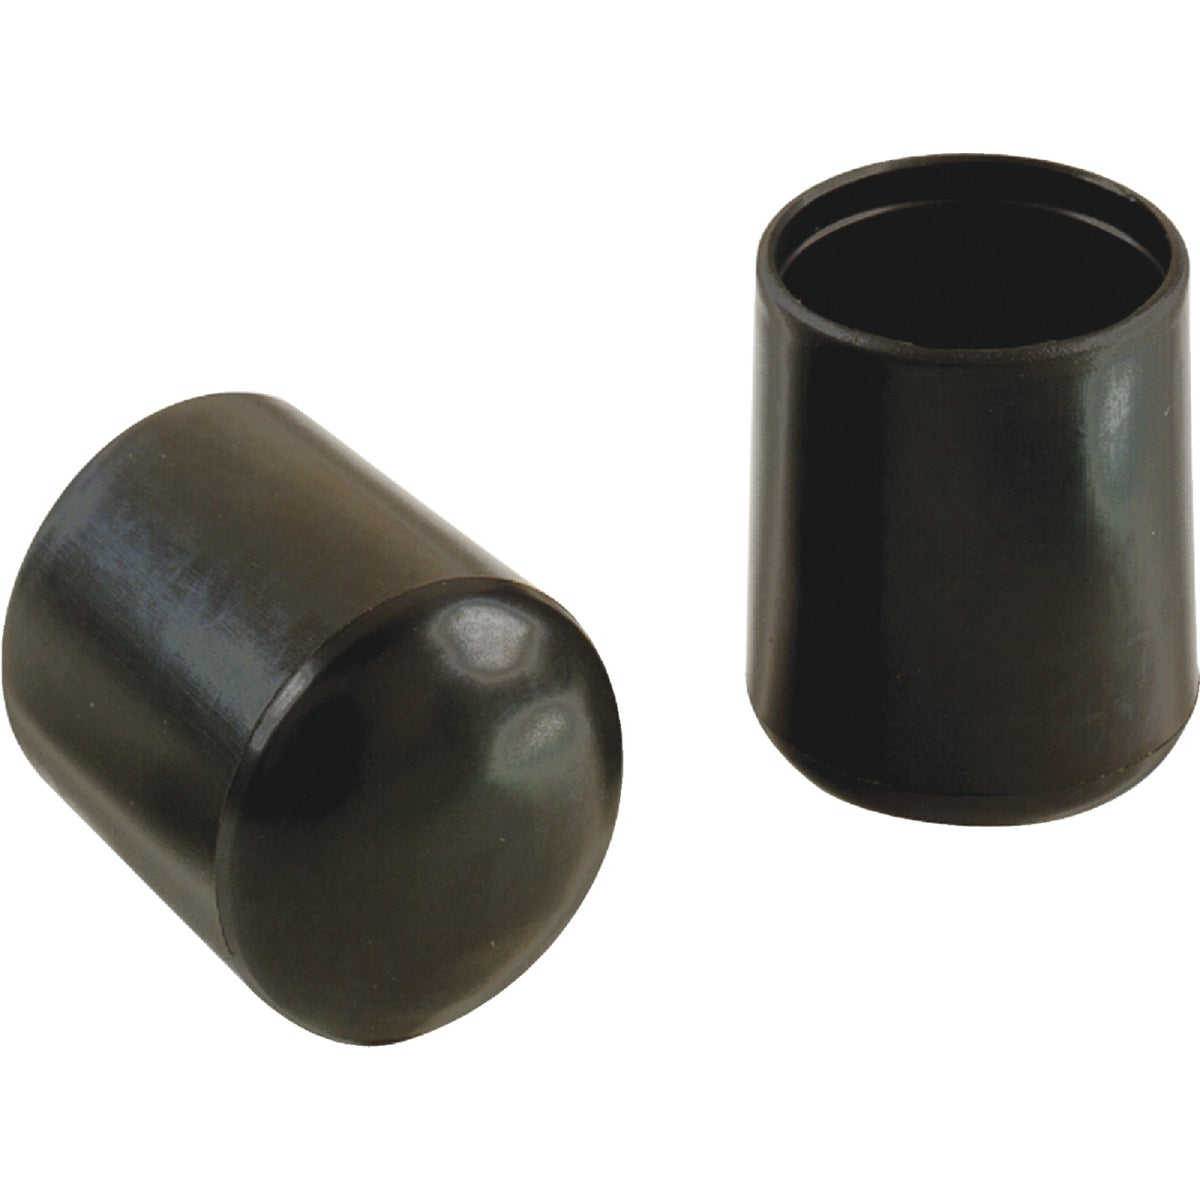 "7/8"" BLACK VINYL LEG TIP - 209473 by Shepherd Hardware"